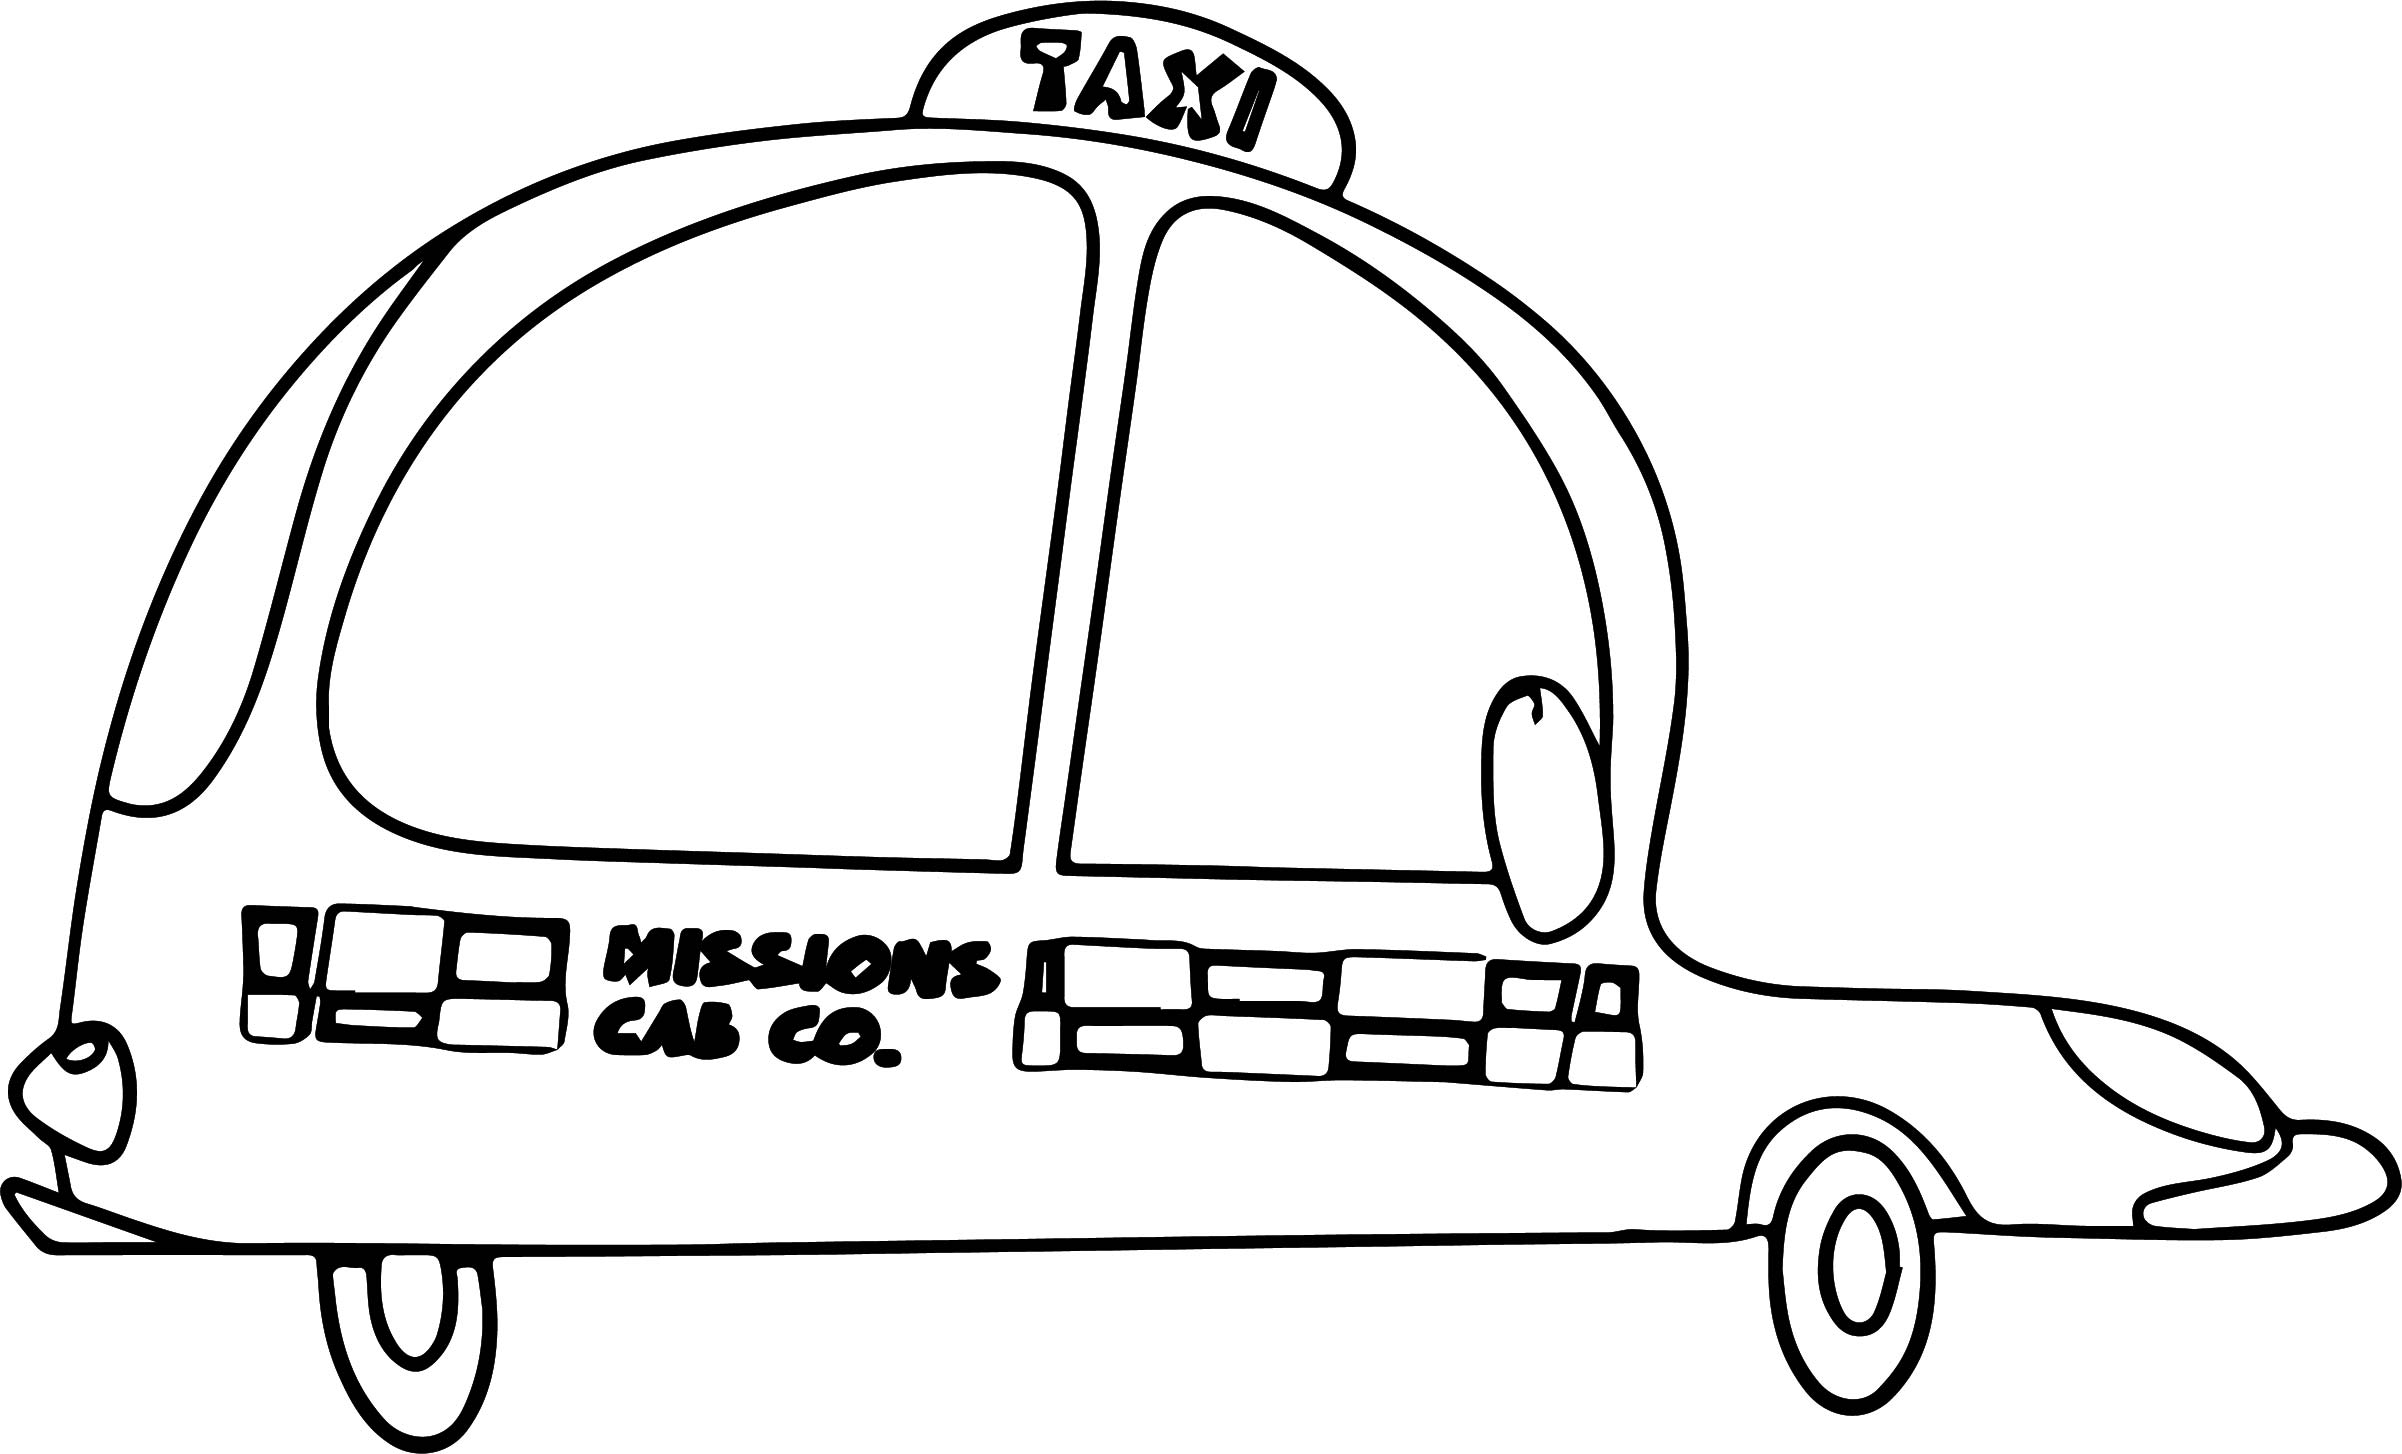 Taxi mission driver car coloring page for Taxi coloring page